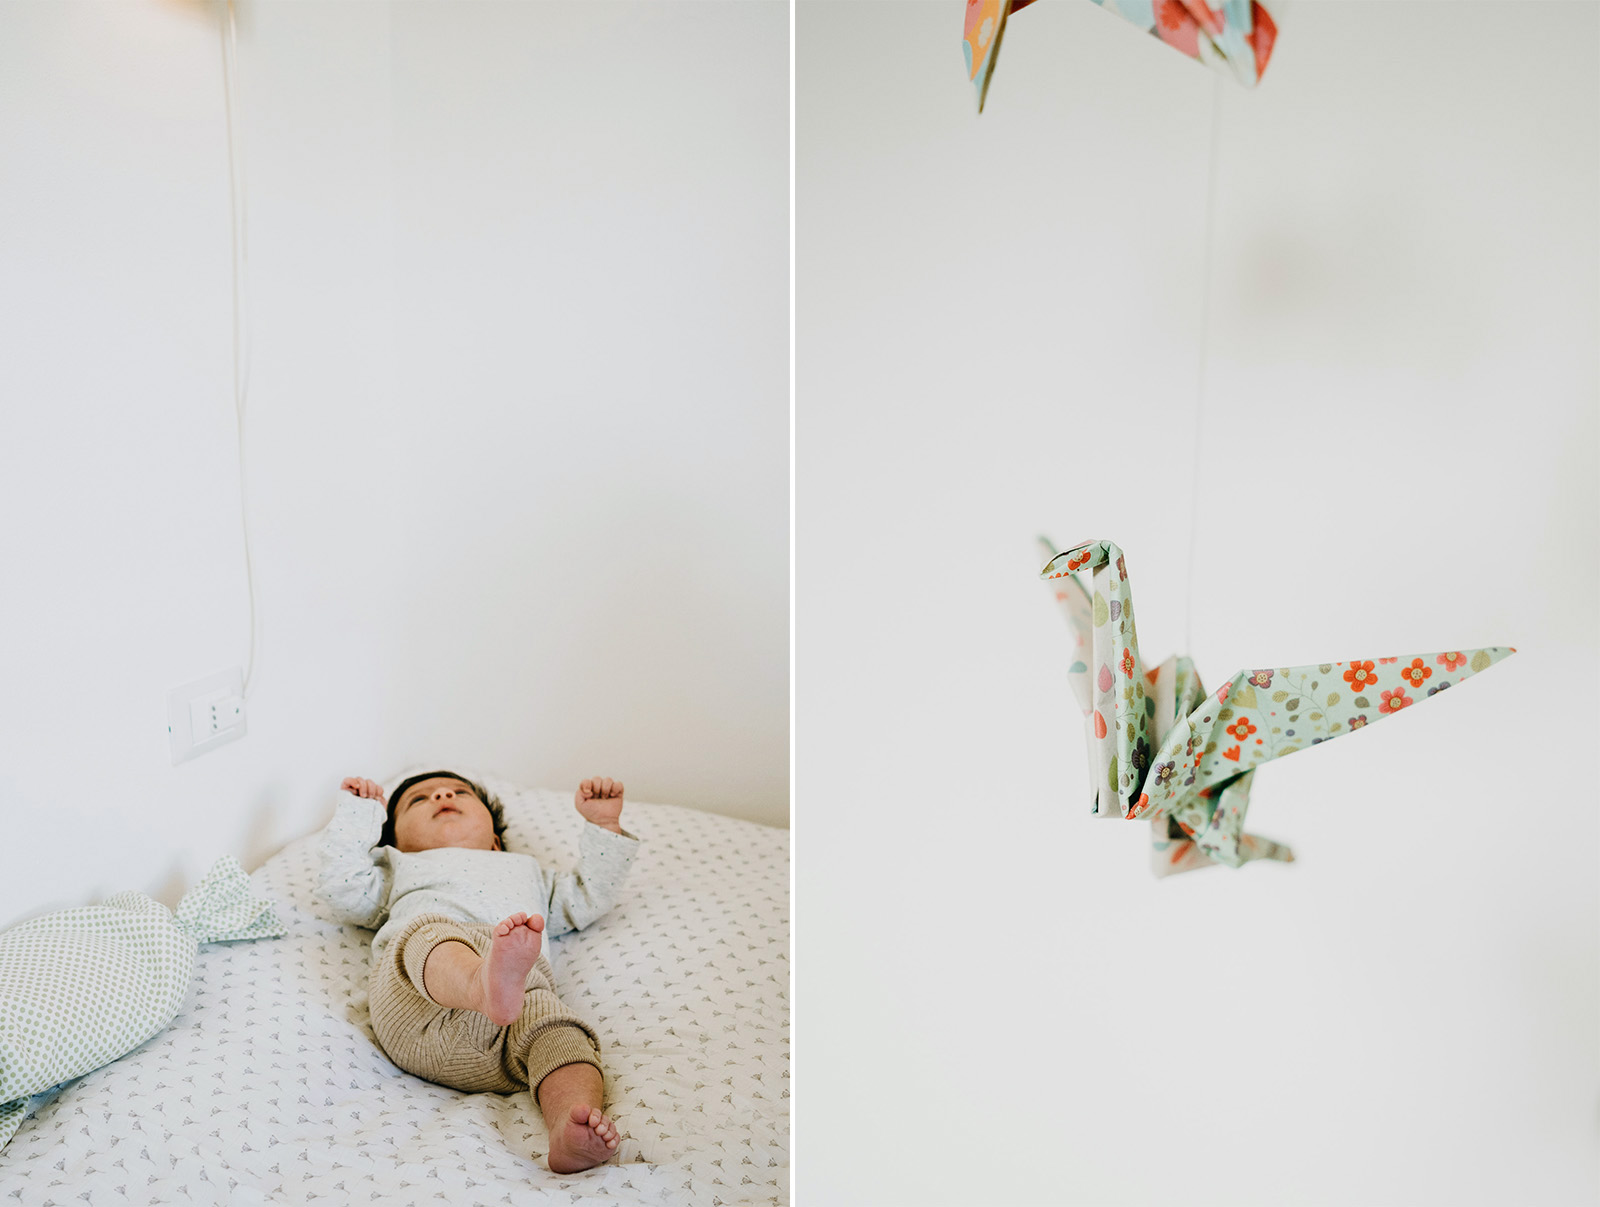 rebecca rinaldi  family photography.   baby alone on bed looking at origami hanging.